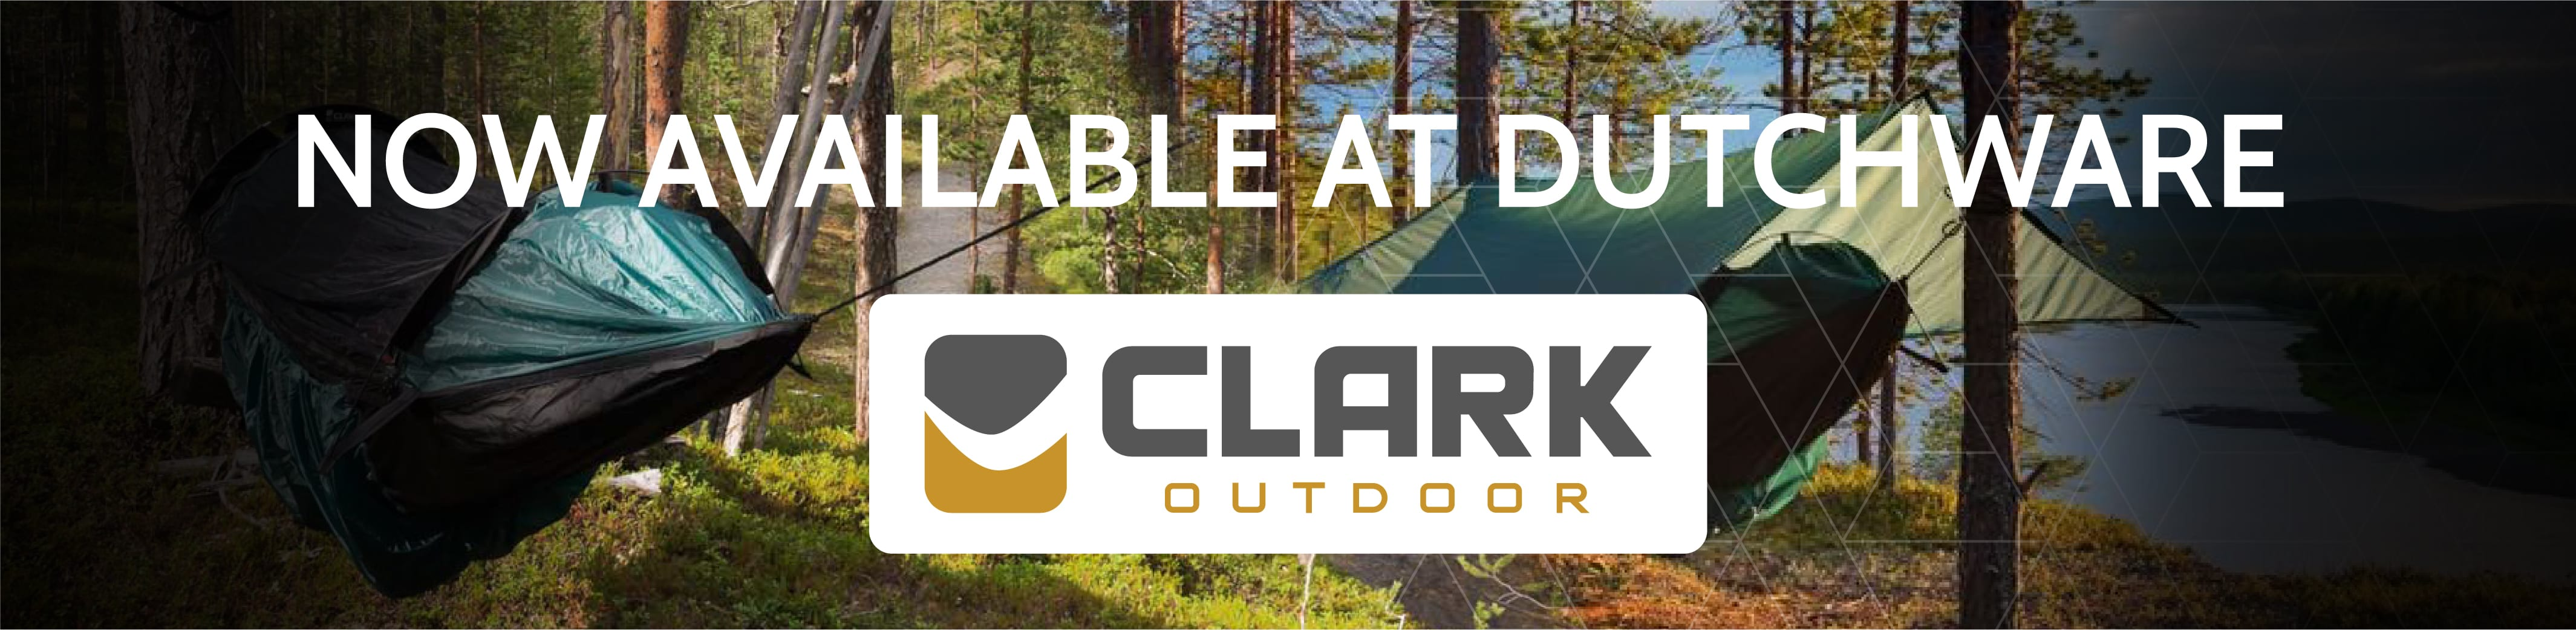 Clark hammocks are available at dutchware